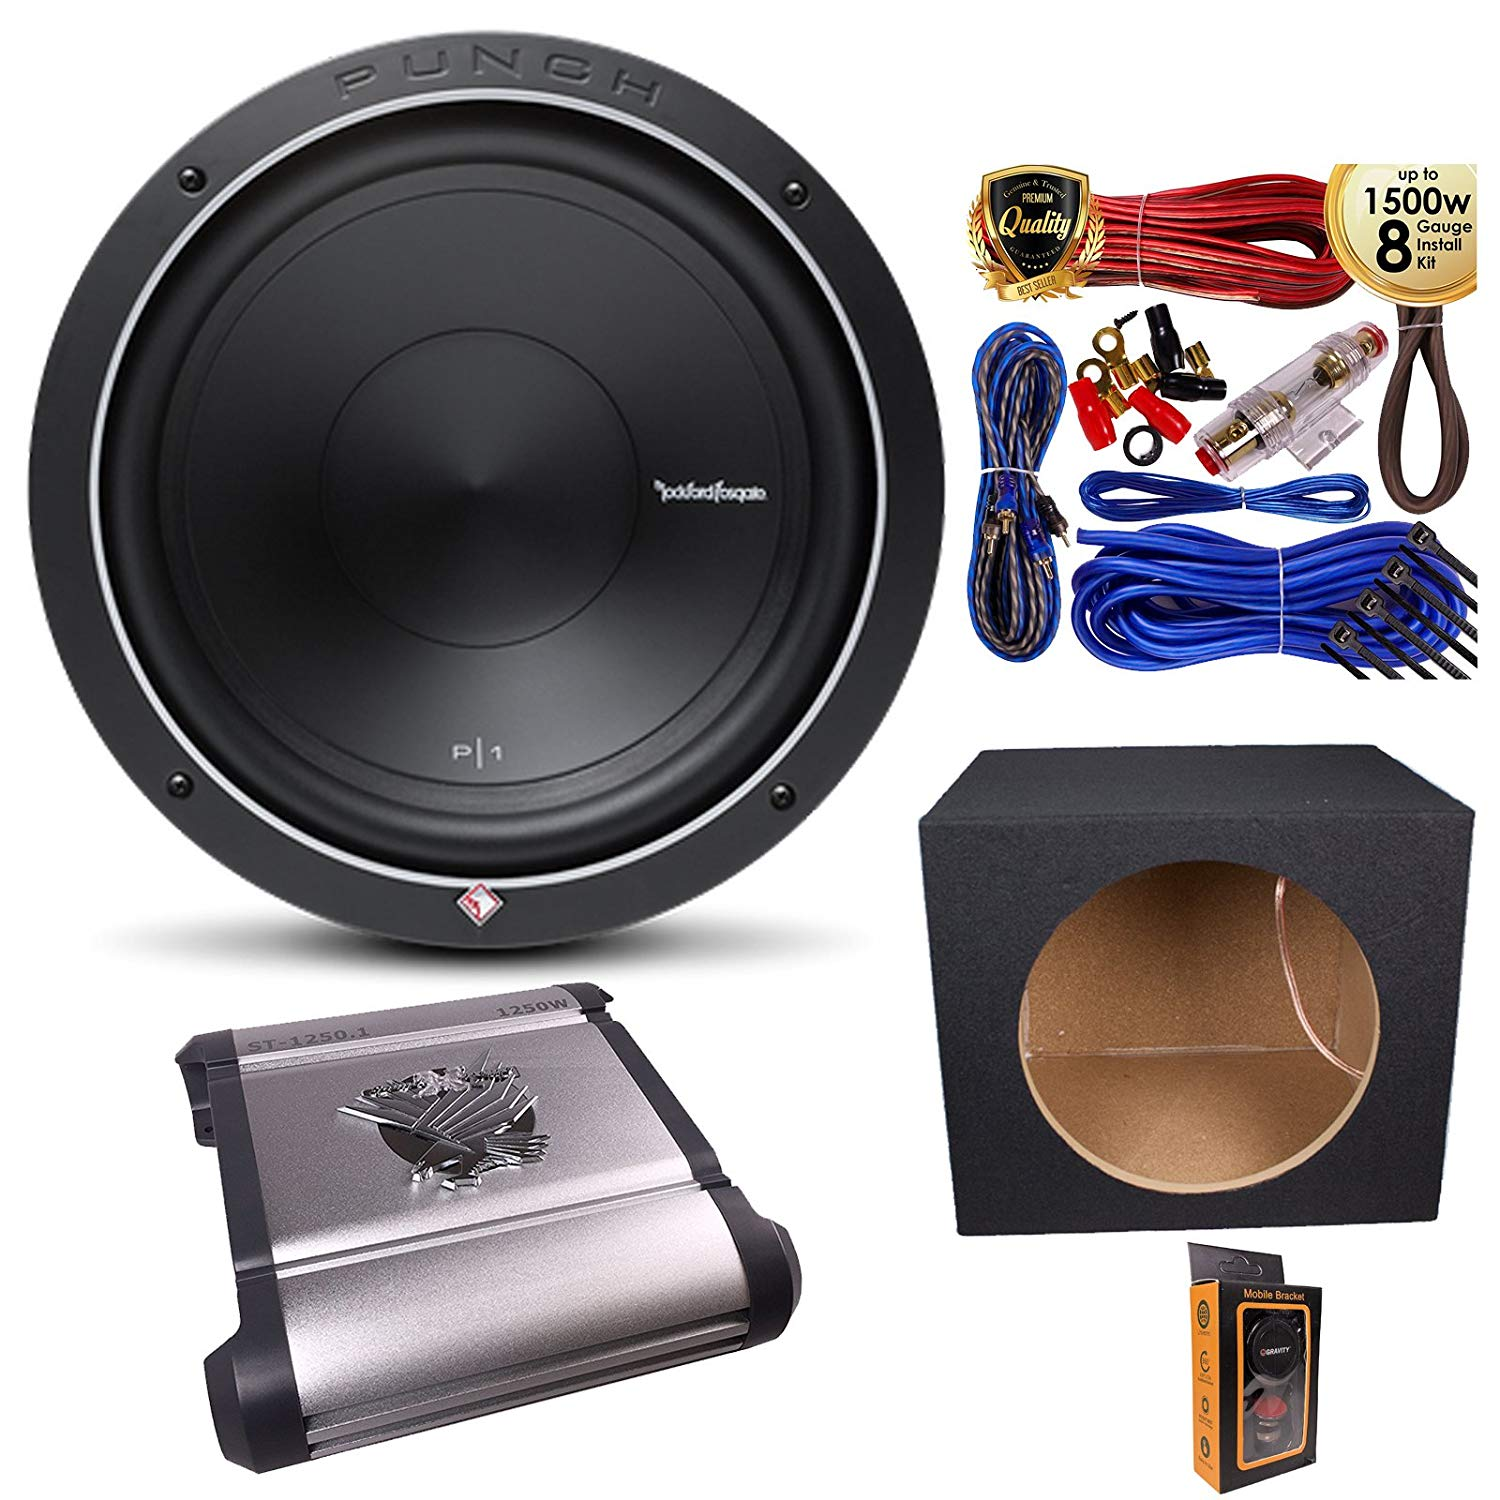 Cheap Mono Subwoofer Amp, find Mono Subwoofer Amp deals on